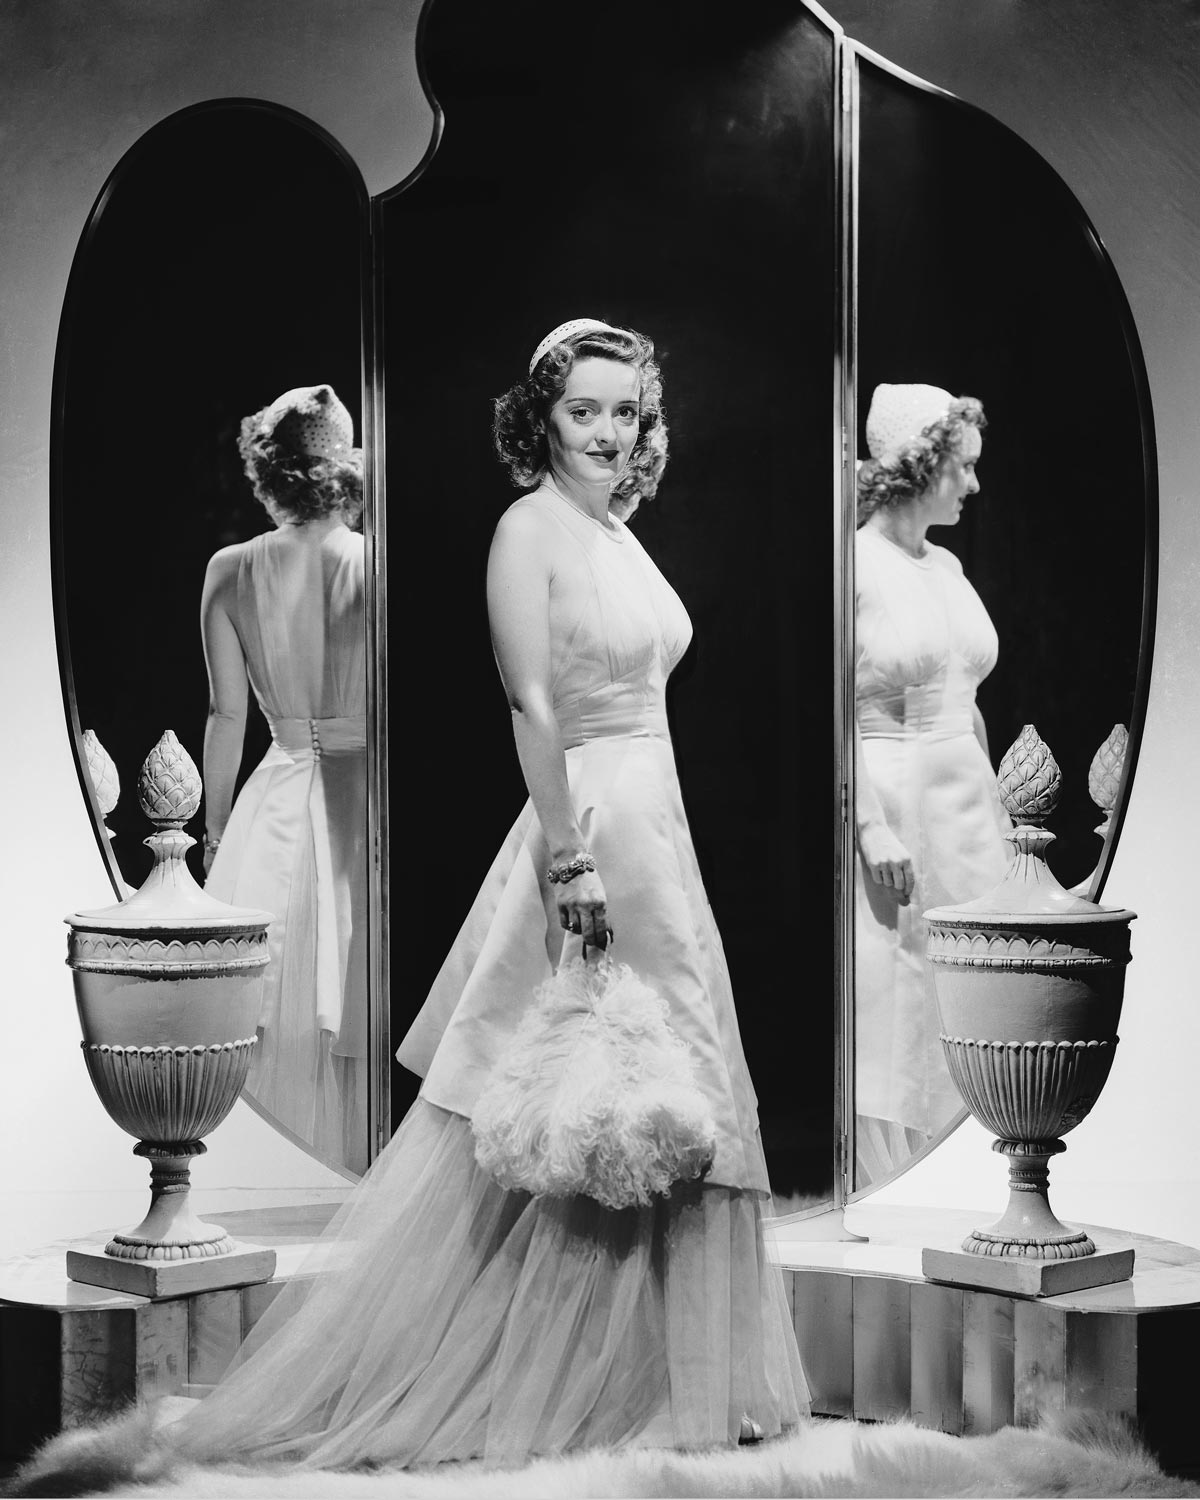 movie-wedding-dresses-dark-victory-bette-davis-0316.jpg